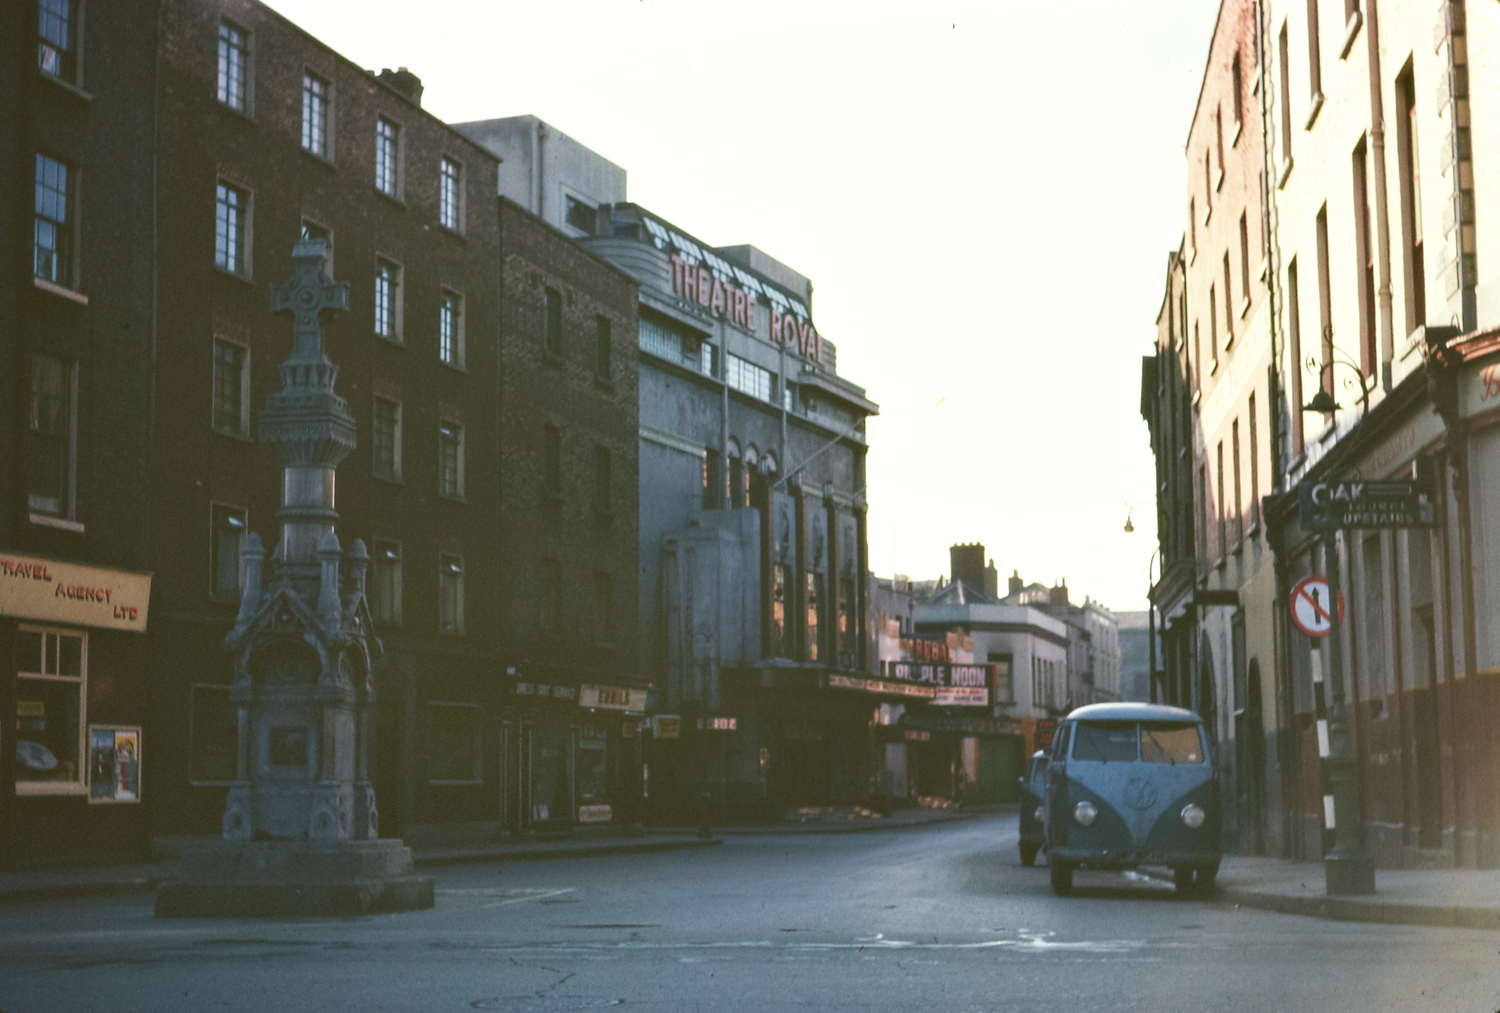 "Ireland 1960s, The late lamented Theatre Royal on Hawkins Street in Dublin. Thanks to swordscookie for this information on the monument in the foreground: ""Monument to Constable Jeremiah Sheehan, 6' 4"" tall of the DMP who went down into a drain at this point to rescue some council workmen who had been overcome with sewer gas and lost his own life!"" Niall McAuley contributed this brilliant link outlining the long history of the Theatre Royal ""including the programme of the final show, the ""Royale Finale"", which was on Saturday 30th of June at 8pm, just three months after this photo."" Date: Sunday, 1 April 1962"